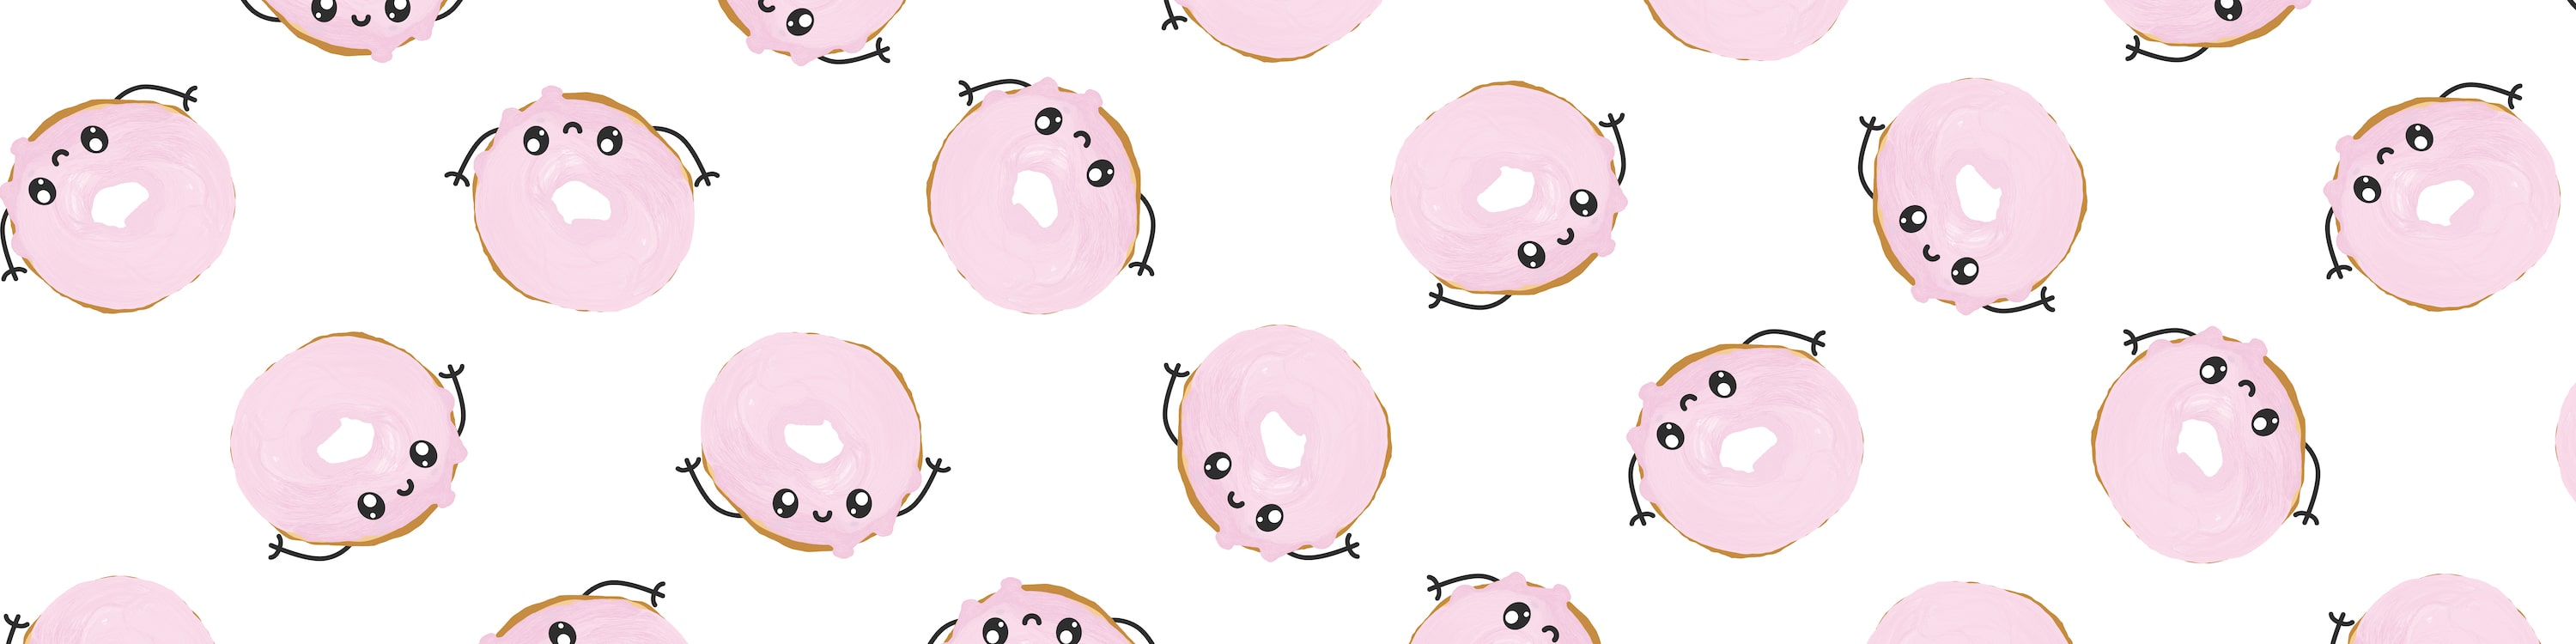 Repeating Patteern of Pink Dougnut Card Illustration